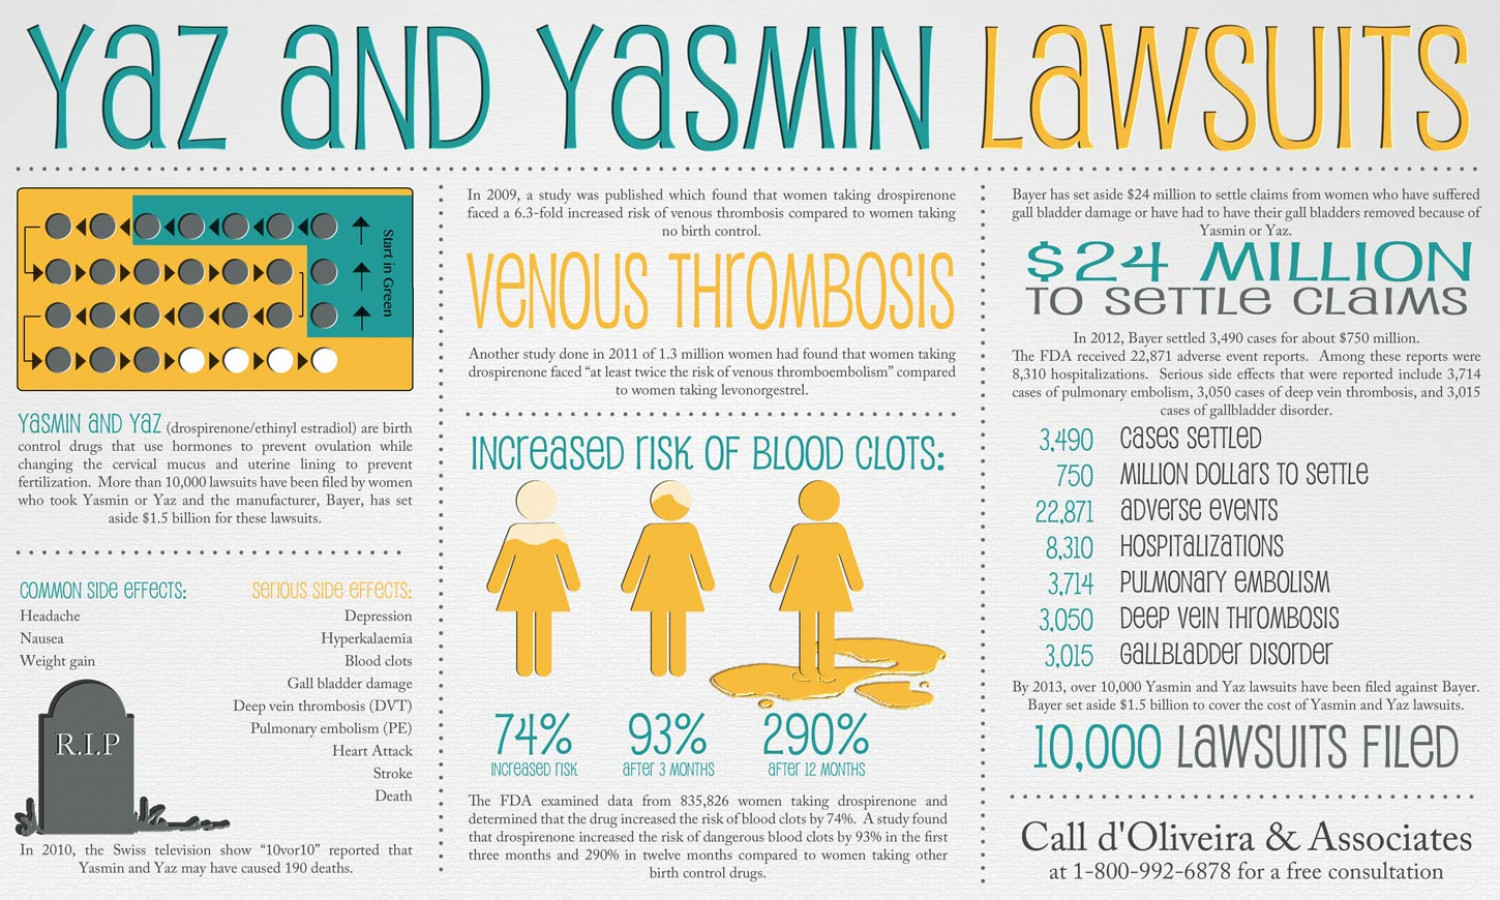 Yaz and Yasmin Lawsuits Infographic